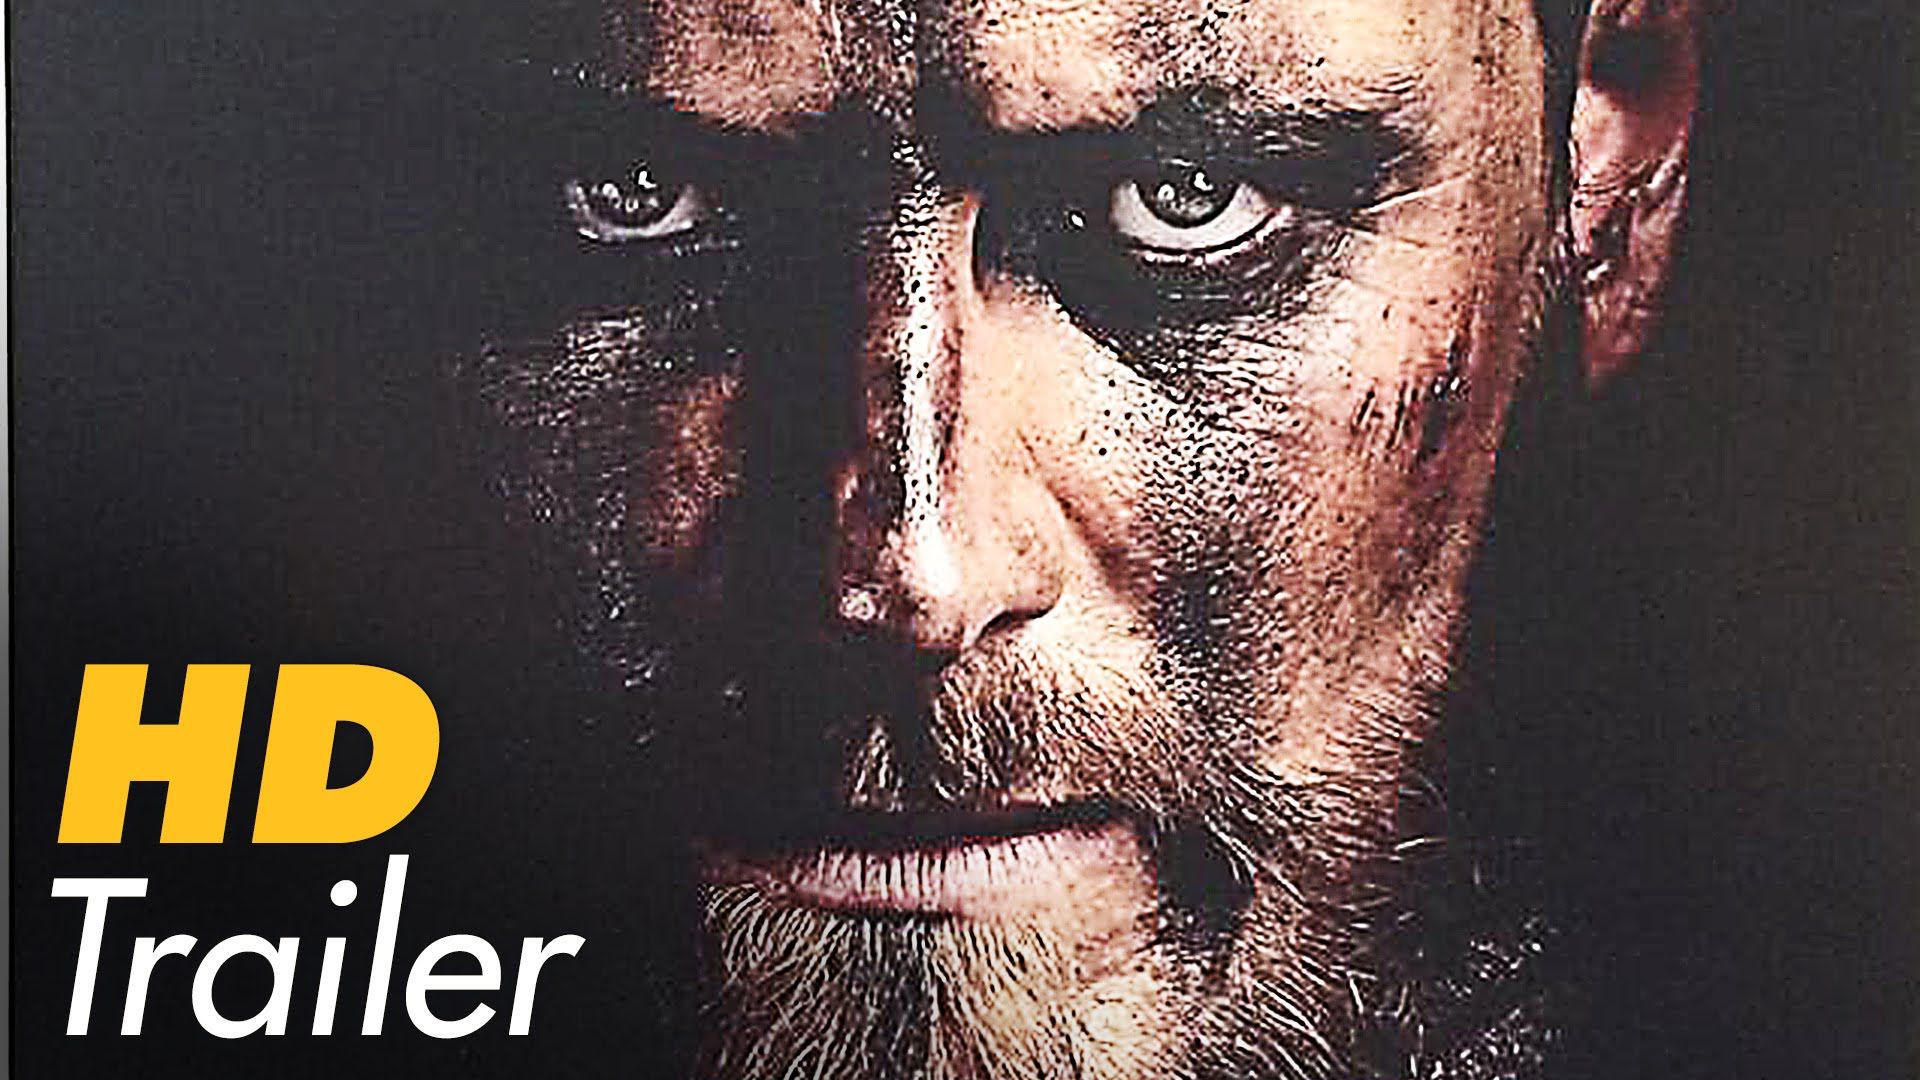 Macbeth First Look Trailer Film Clips - 2015 Michael Fassbender Film Subscribe for more: http://www.youtube.com/subscription_center?add_user=NewTrailersBuzz ...